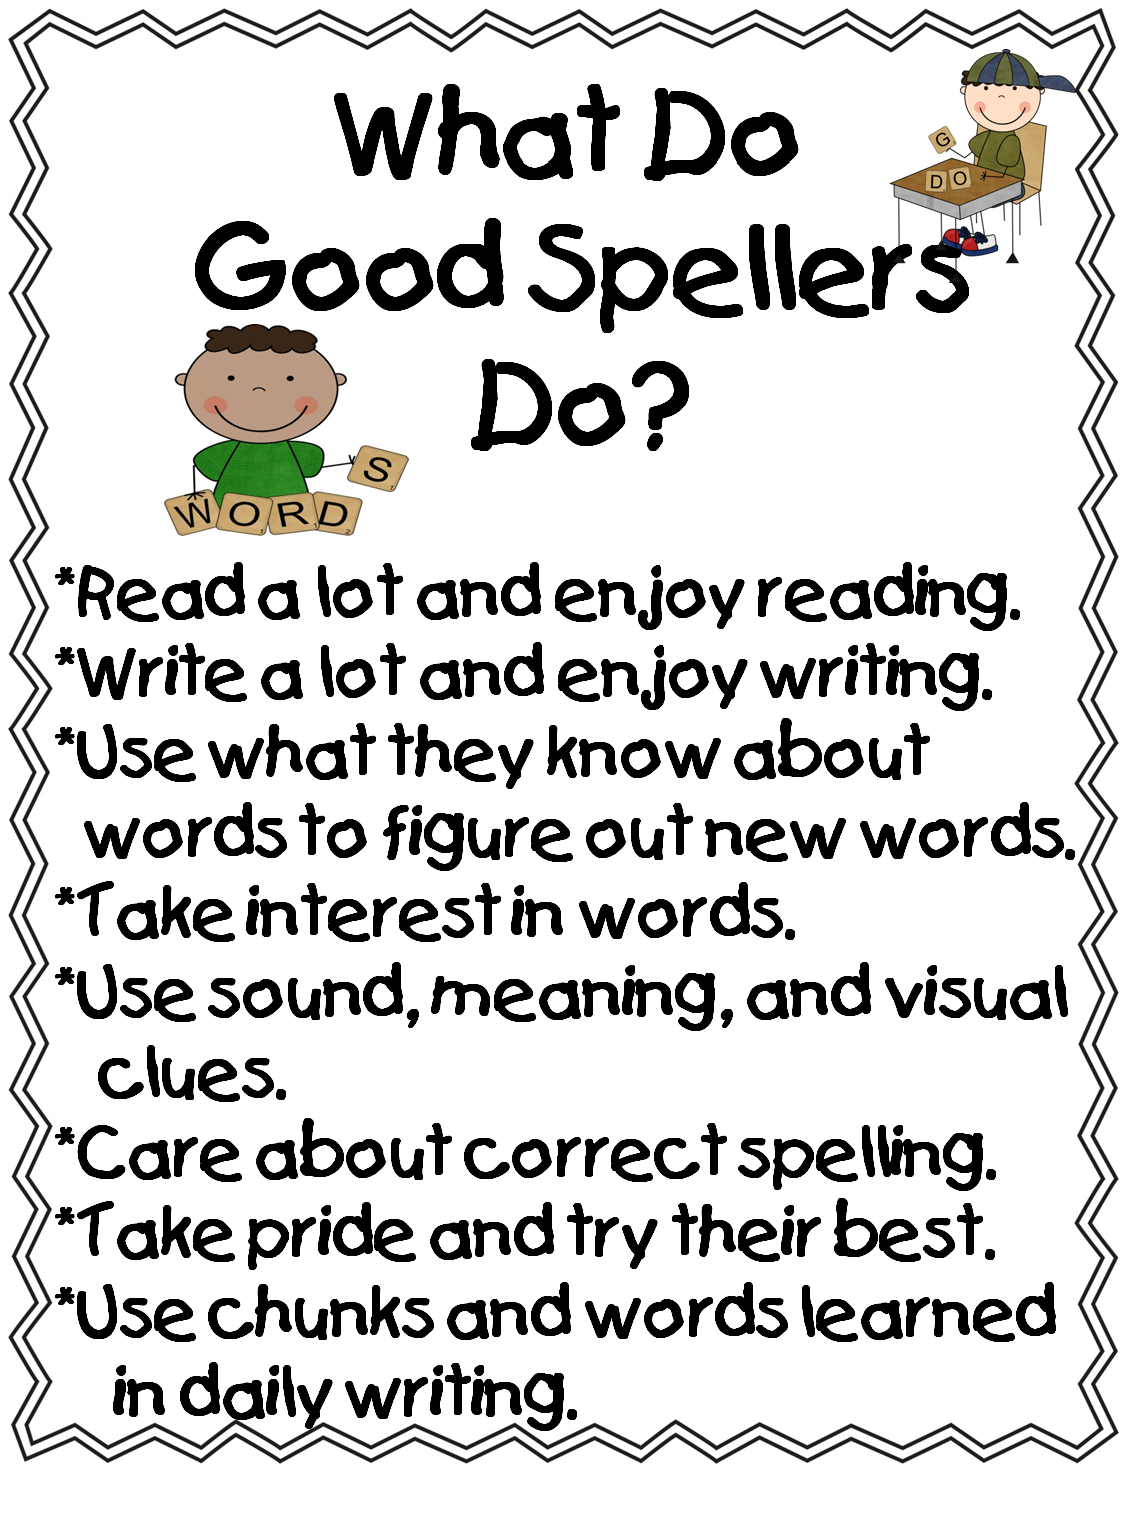 Worksheet Ways To Study Spelling Words 75 fun ways to learn your spelling words highland literacy check it out and see what you think httpwww momto2poshlildivas com20121075 practice html